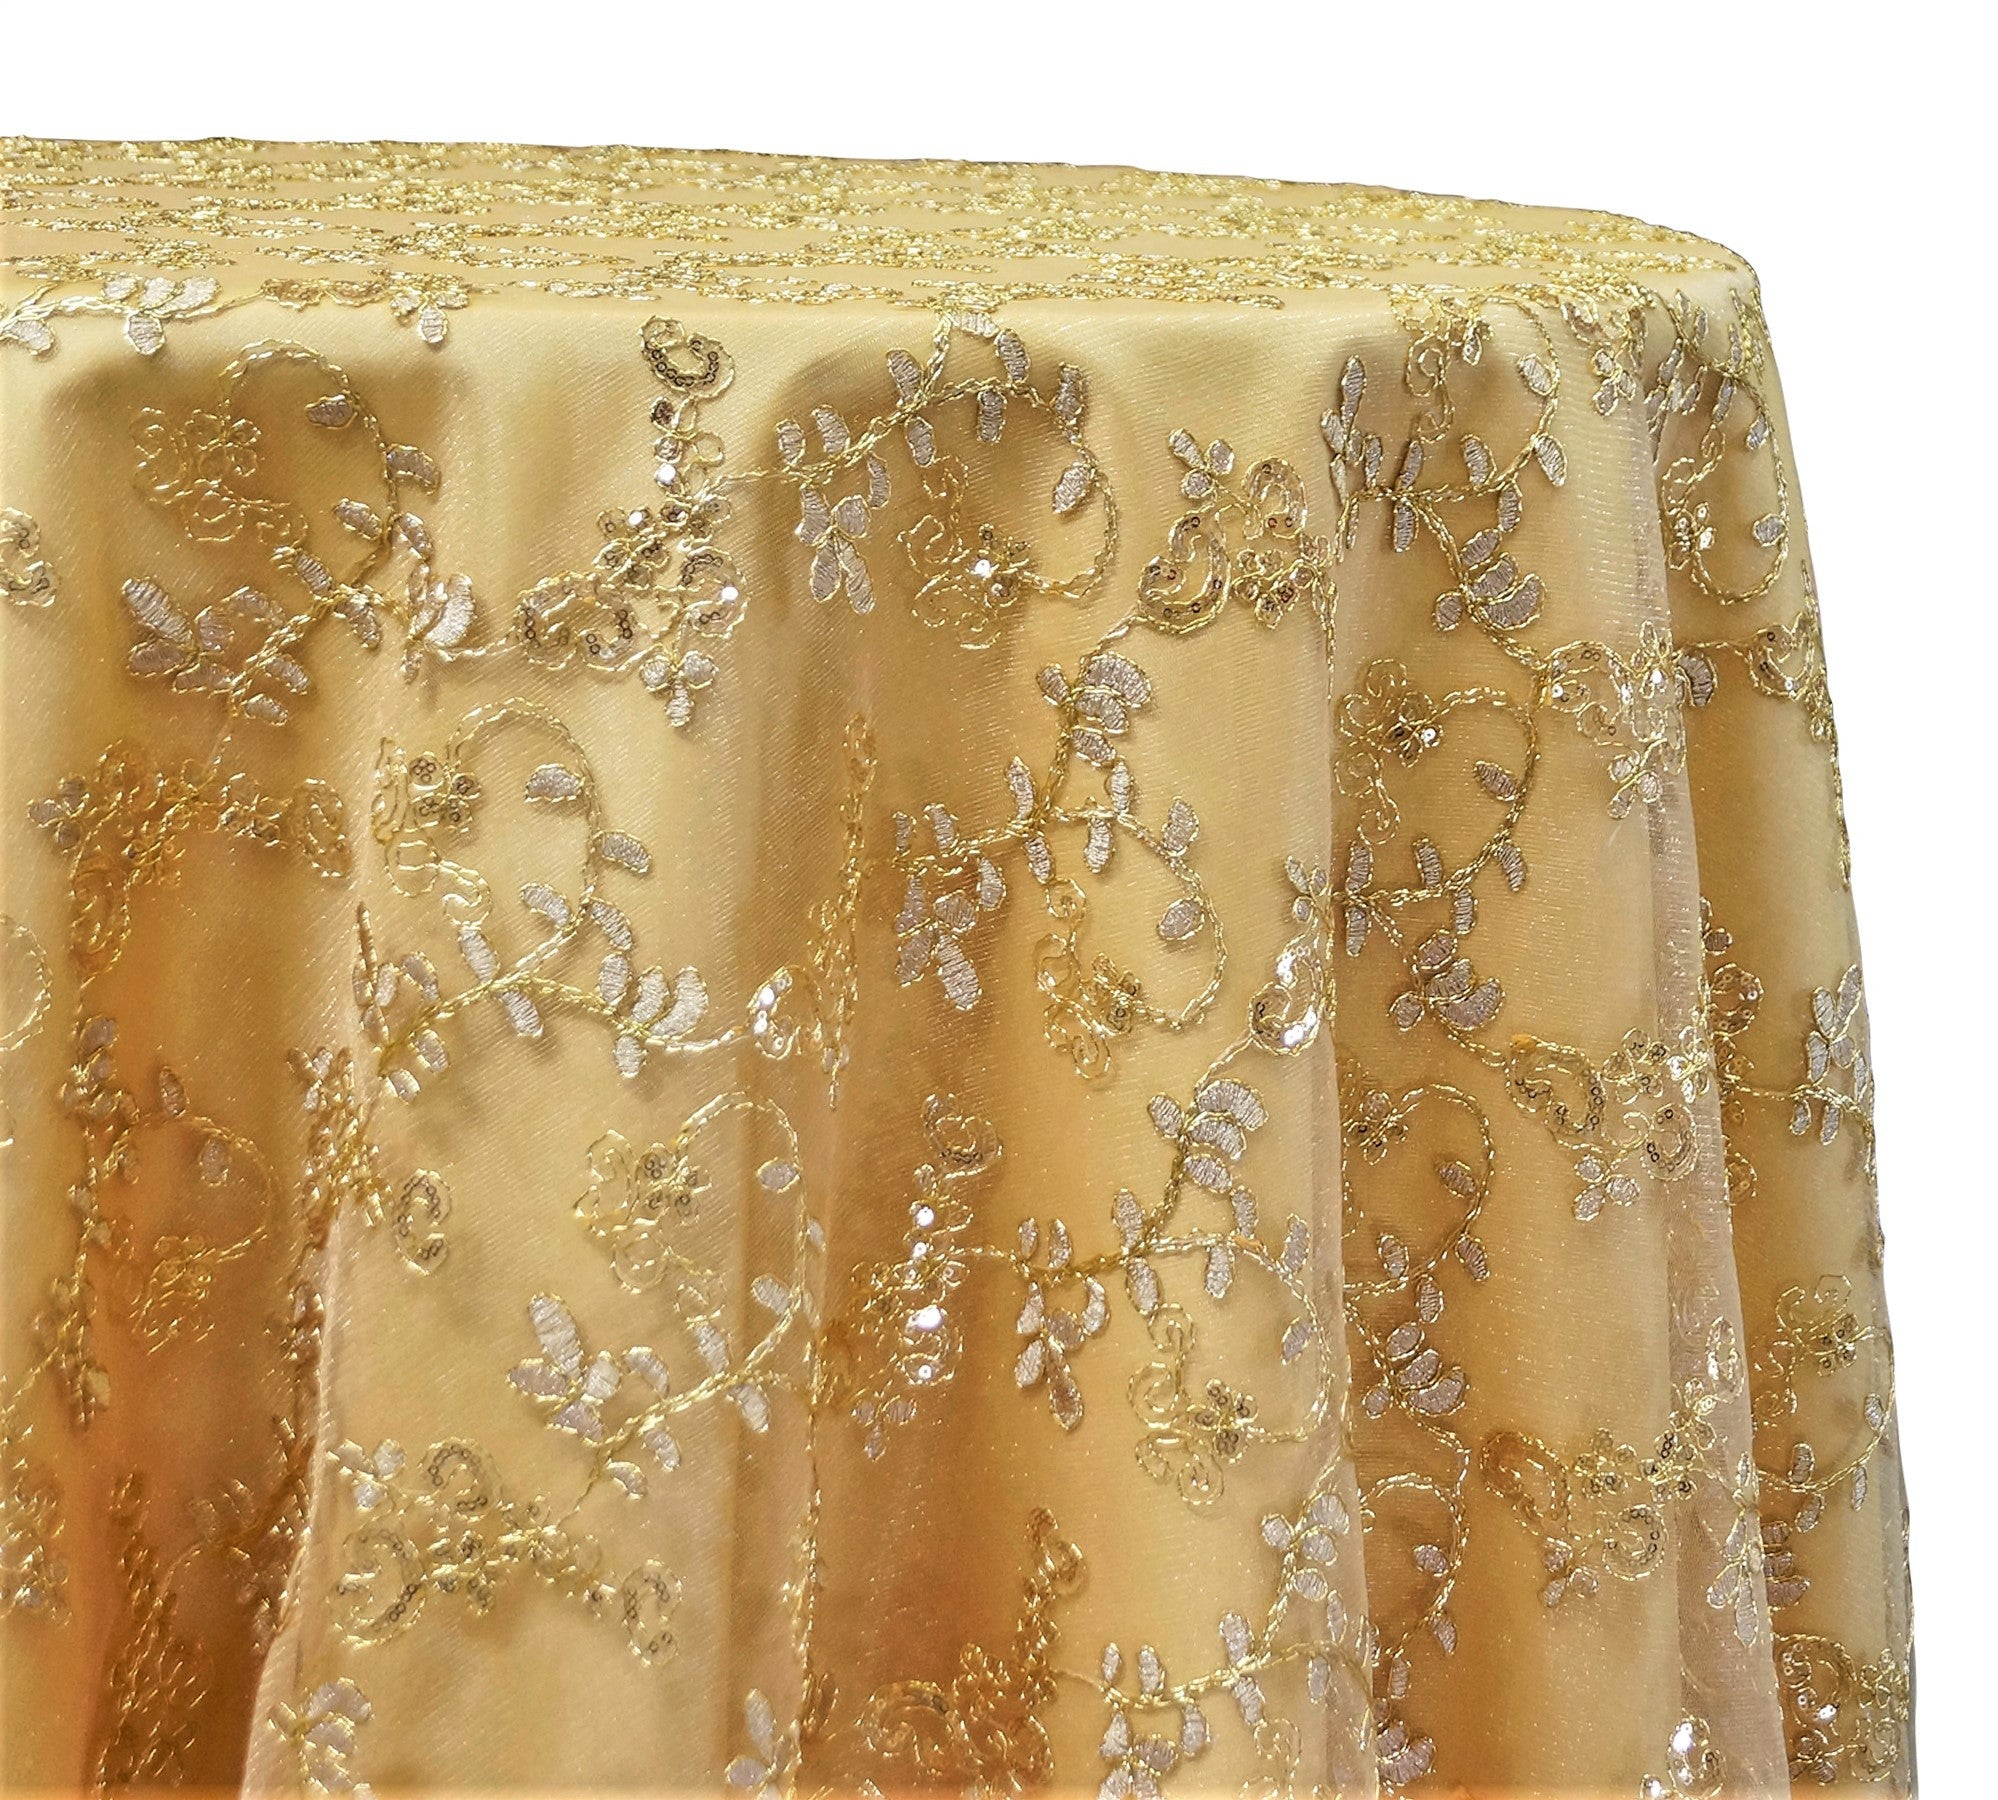 Basil Leaf Embroidery Gold 120 Quot Round Wedding Tablecloth